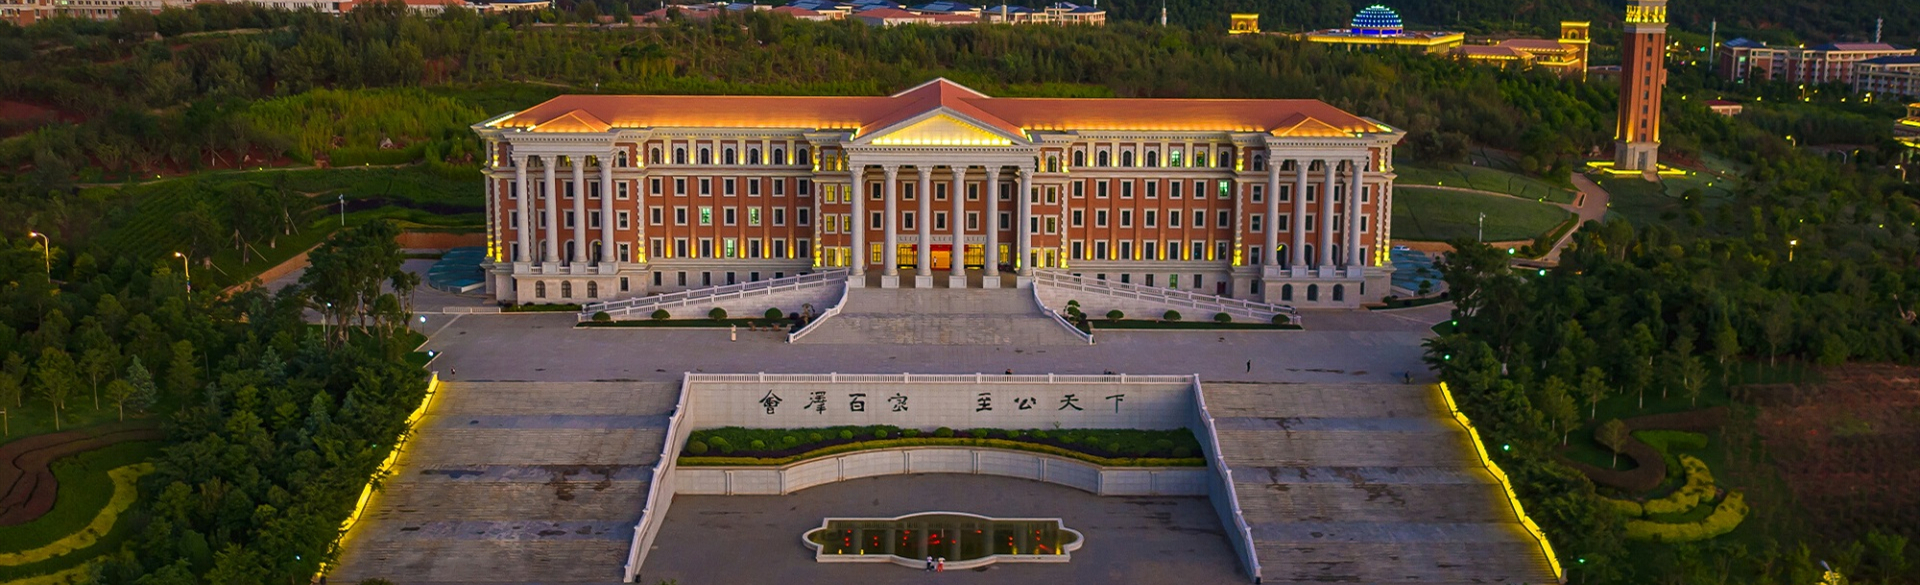 Xi calls on teachers to be role models